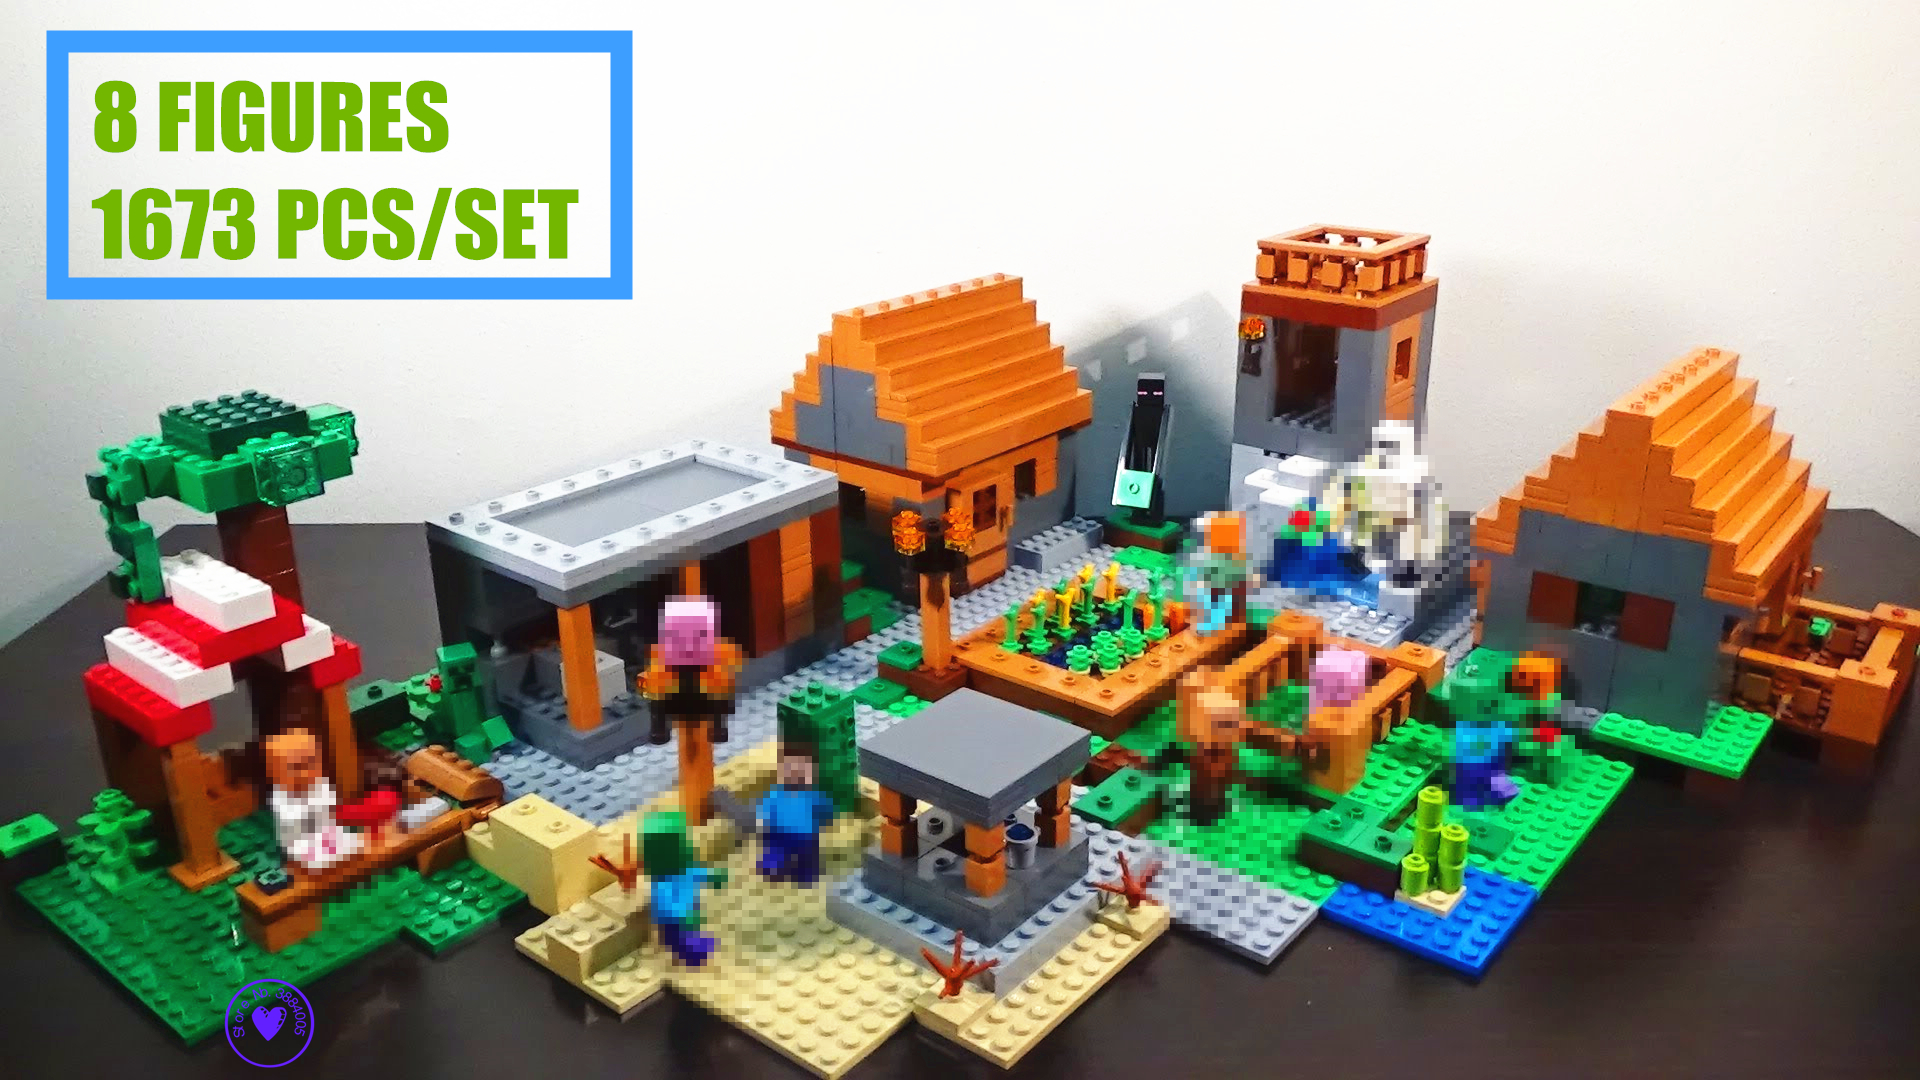 New My worlds Village fit legoings minecrafted figures city Model building blocks bricks diy toys children kid gift birthdays new the mountain cave fit legoings 21137 minecrafted figures city model building blocks bricks kits toy children gift kid